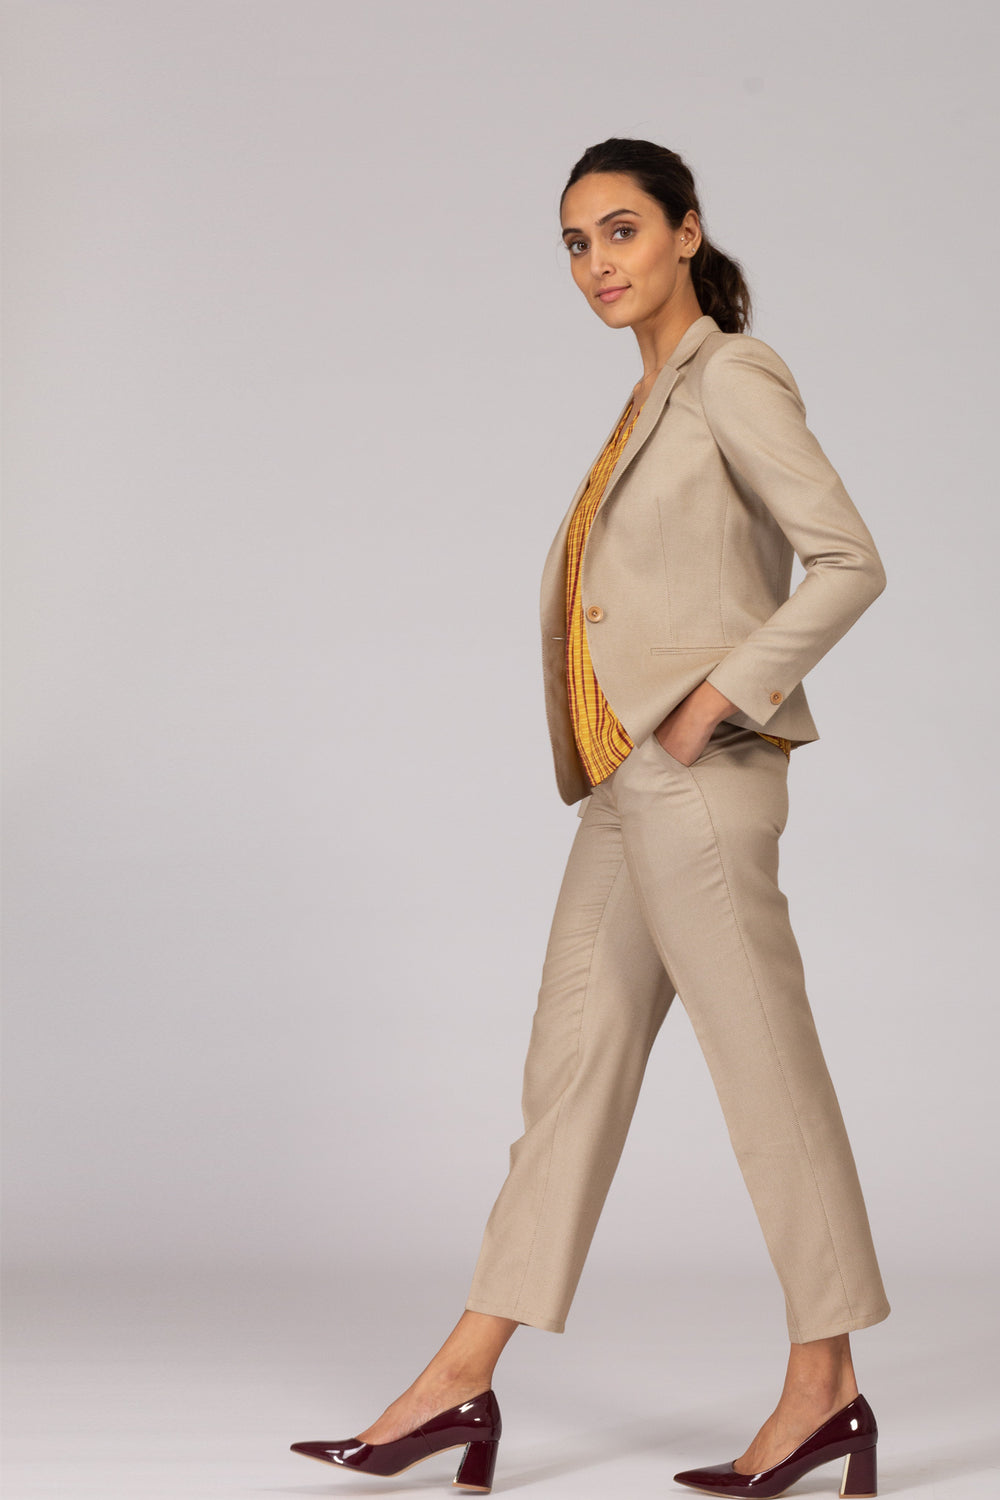 Beige Formal Suit - Trousers and Blazer